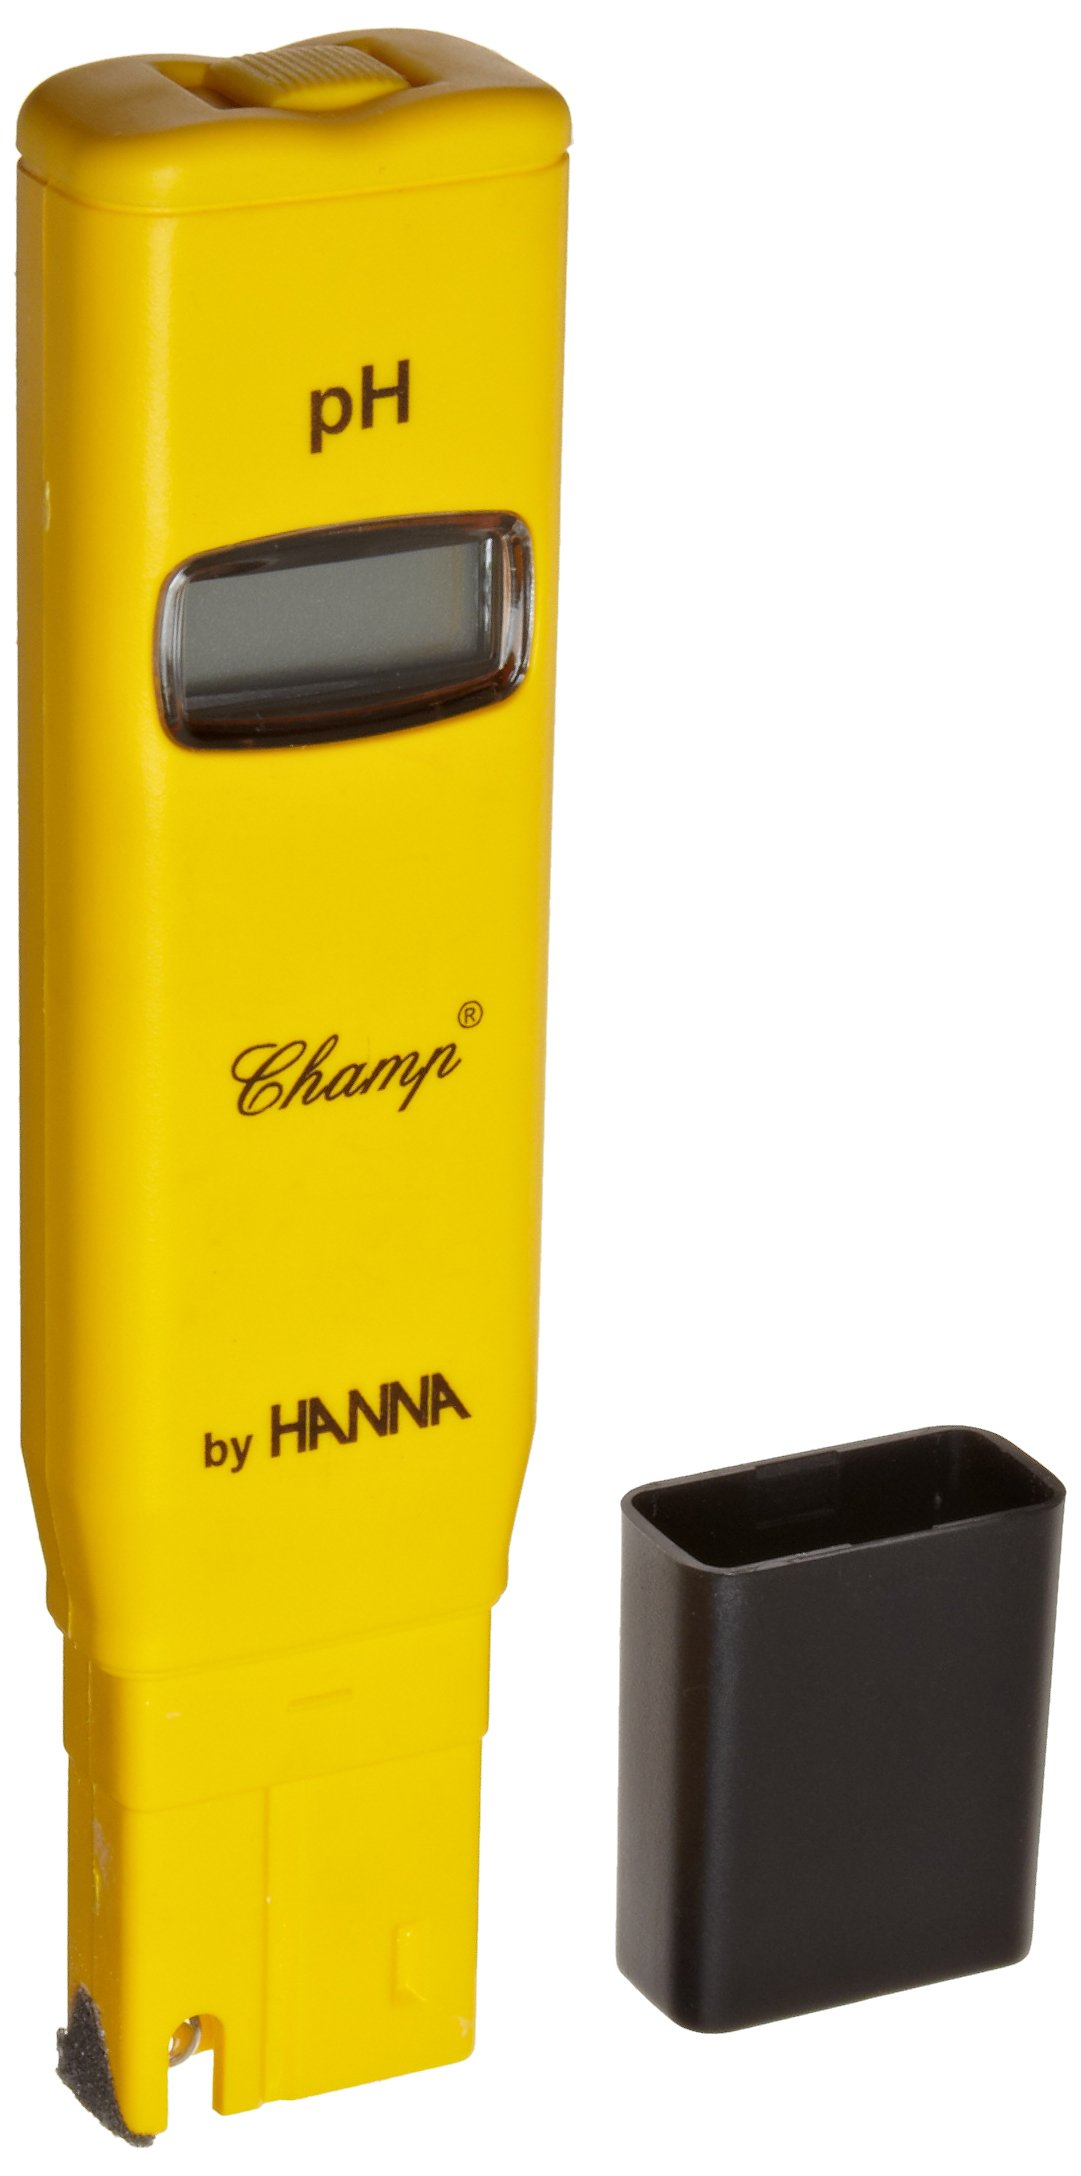 Hanna Instruments HI98108 pHep + pH Tester with Automatic Temperature Compensation, 0.0 to 14.0 pH, +/-0.1 pH accuracy, 0.1 pH Resolution